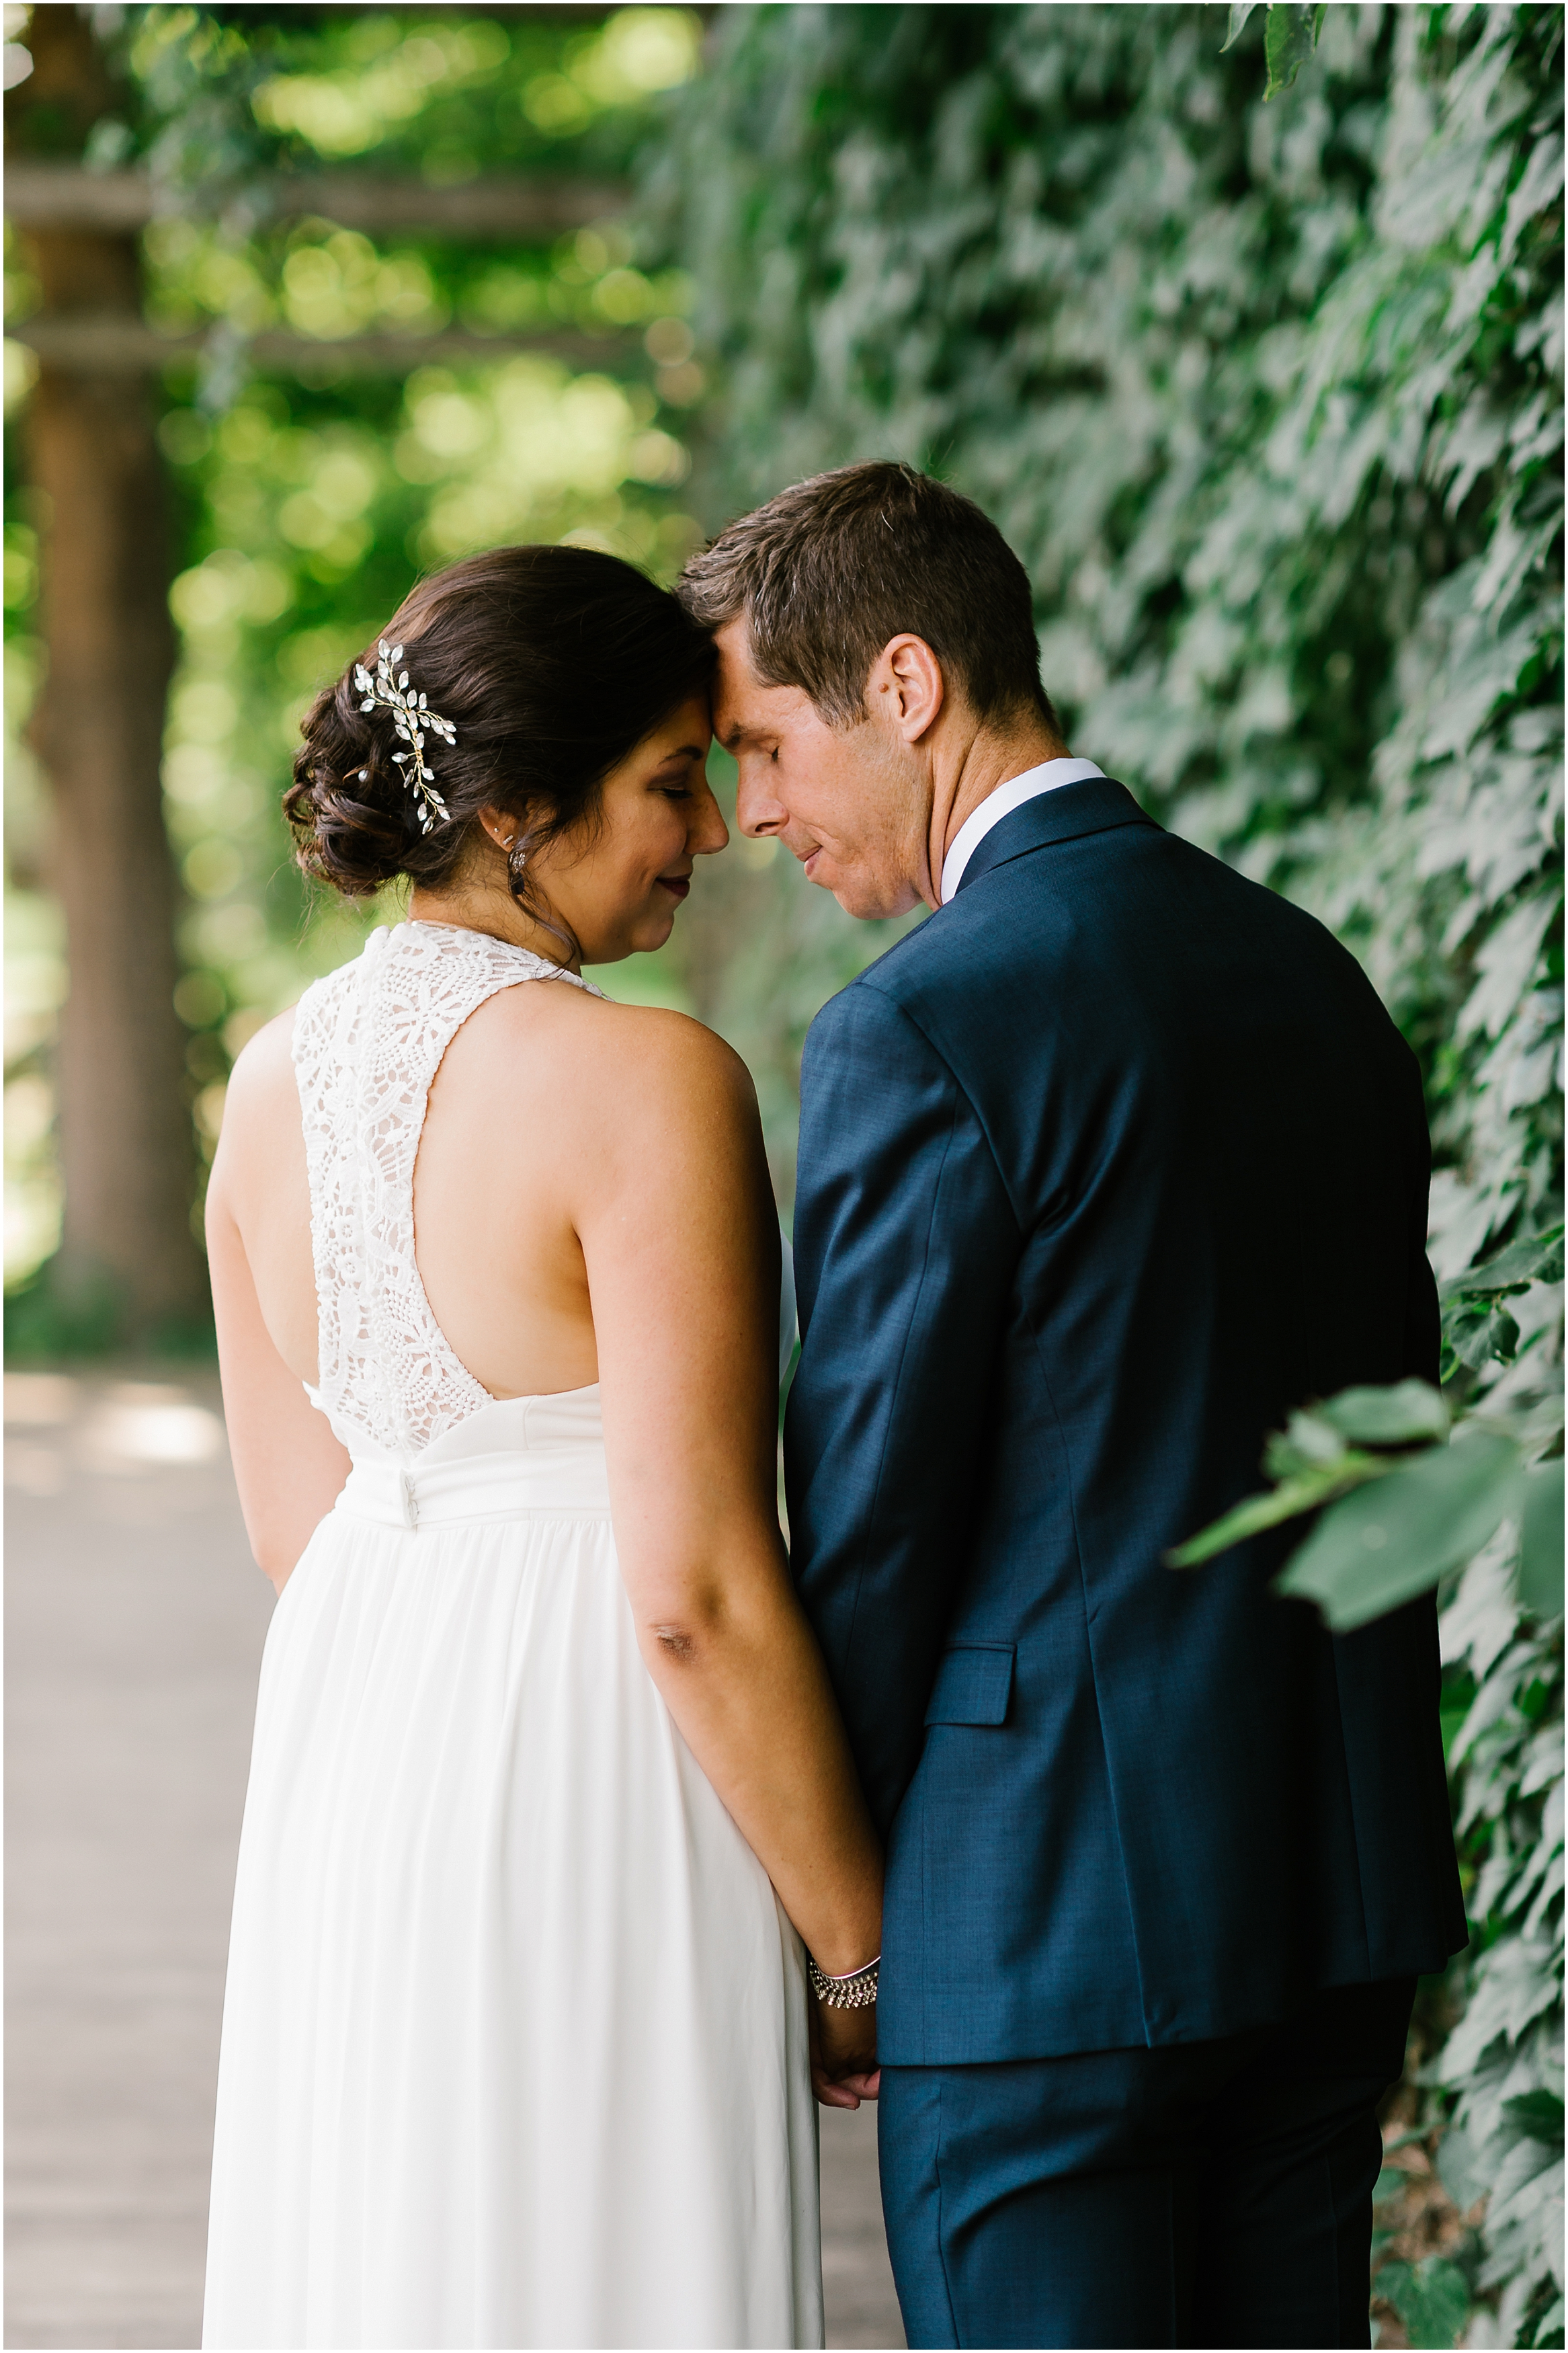 Rebecca Shehorn Photography Indianapolis Wedding Photographer Just Pop In Wedding_0641.jpg